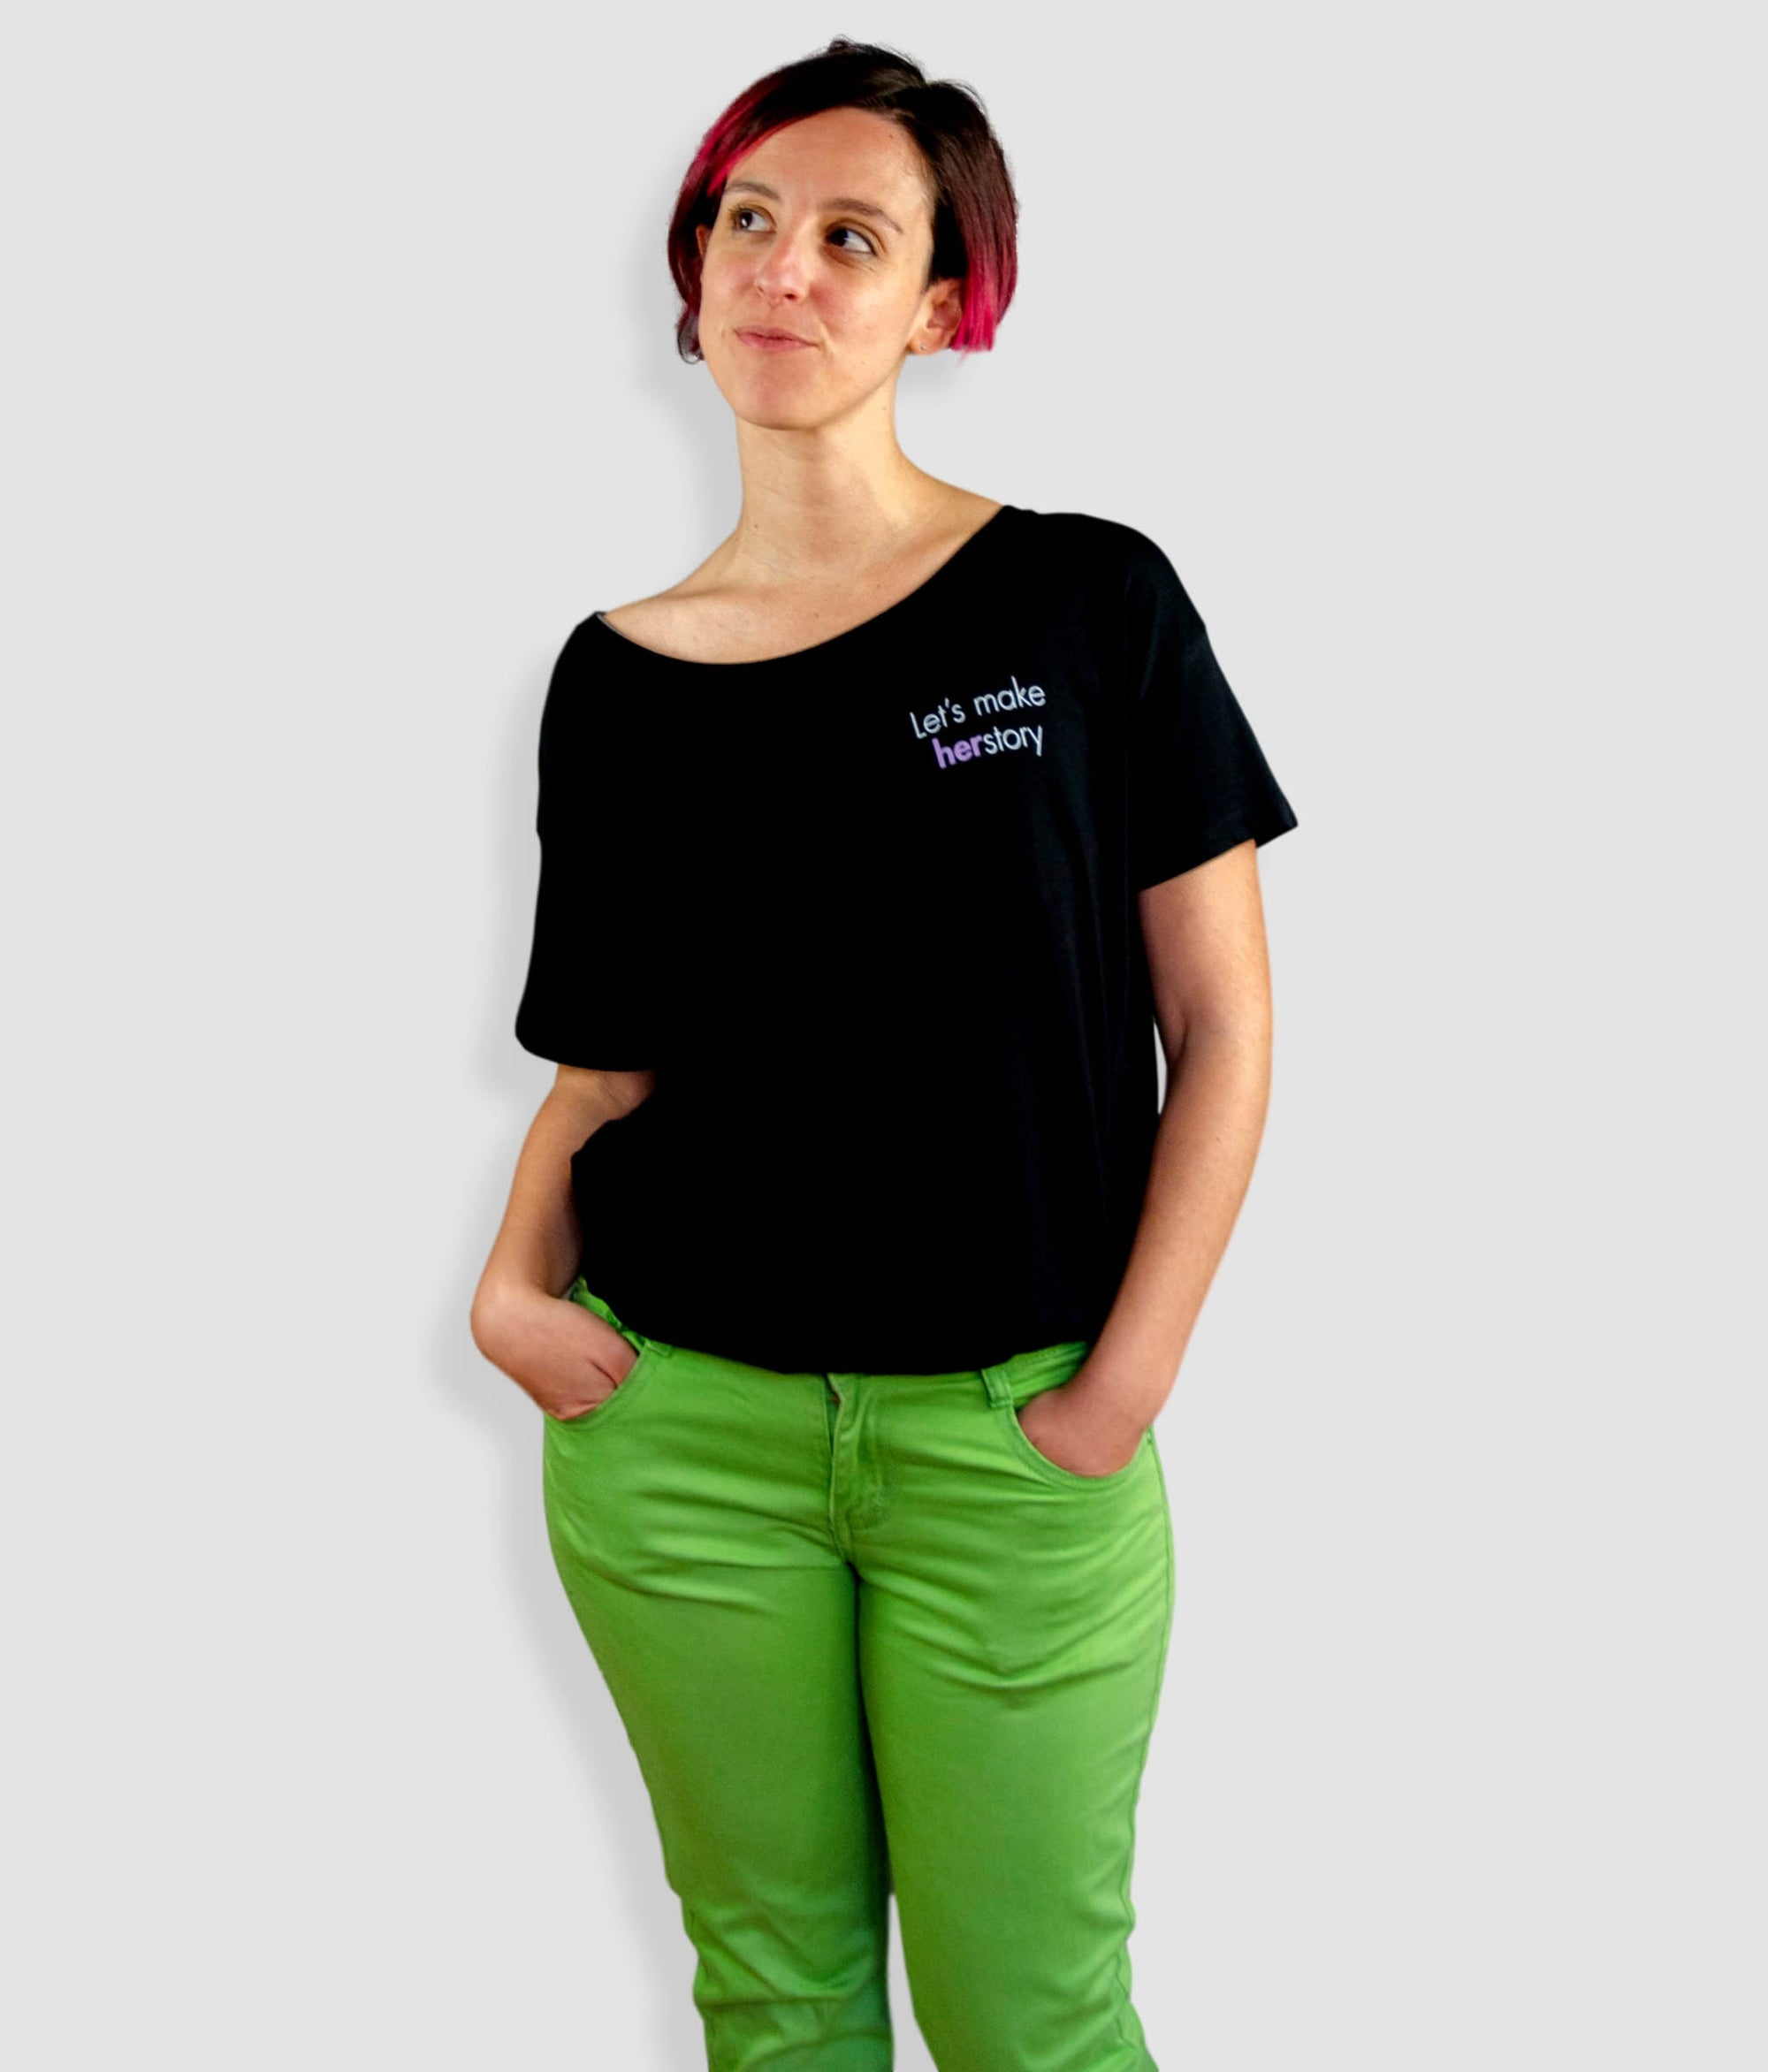 Open Neck Organic Feminist T Shirt - Let's Make Herstory, Tilted